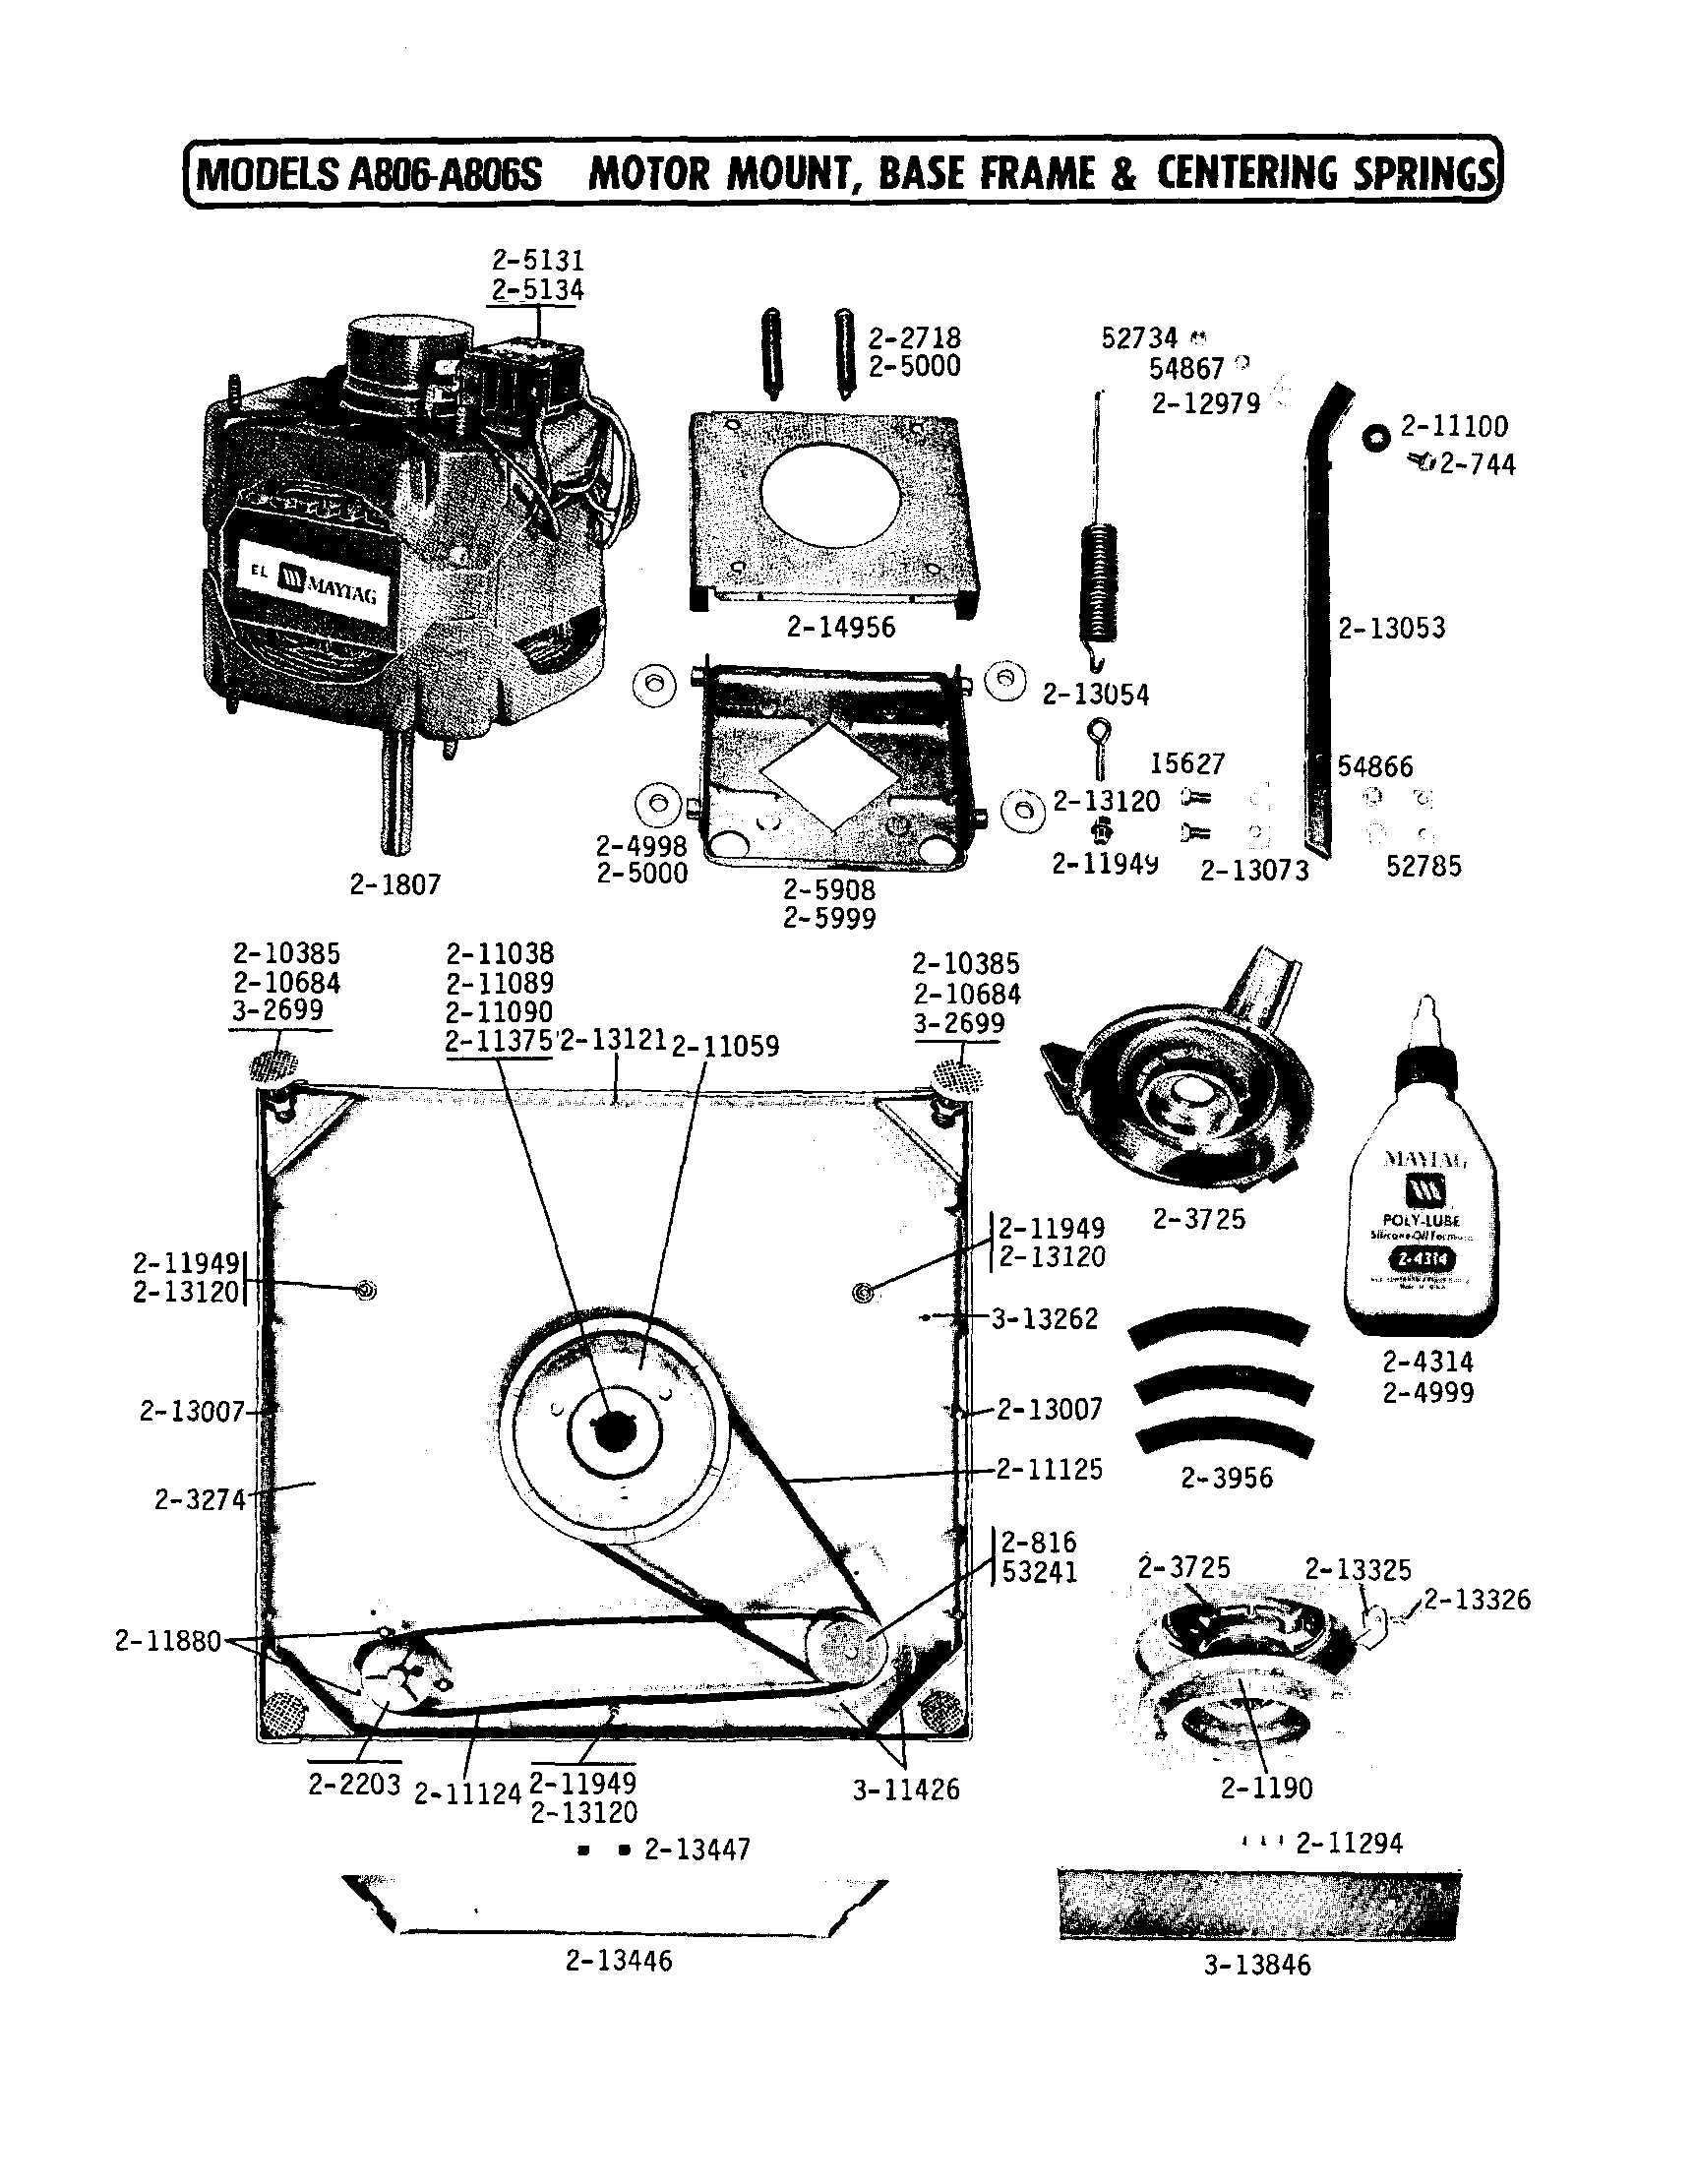 wrg 5324] motor washing wiring machine diagramcws3600asi Washing Machine Motor Wire Color Code maytag washer motor wiring diagram free download u2022 oasis dl co rh oasis dl co motor washing wiring machine diagramcws3600asi